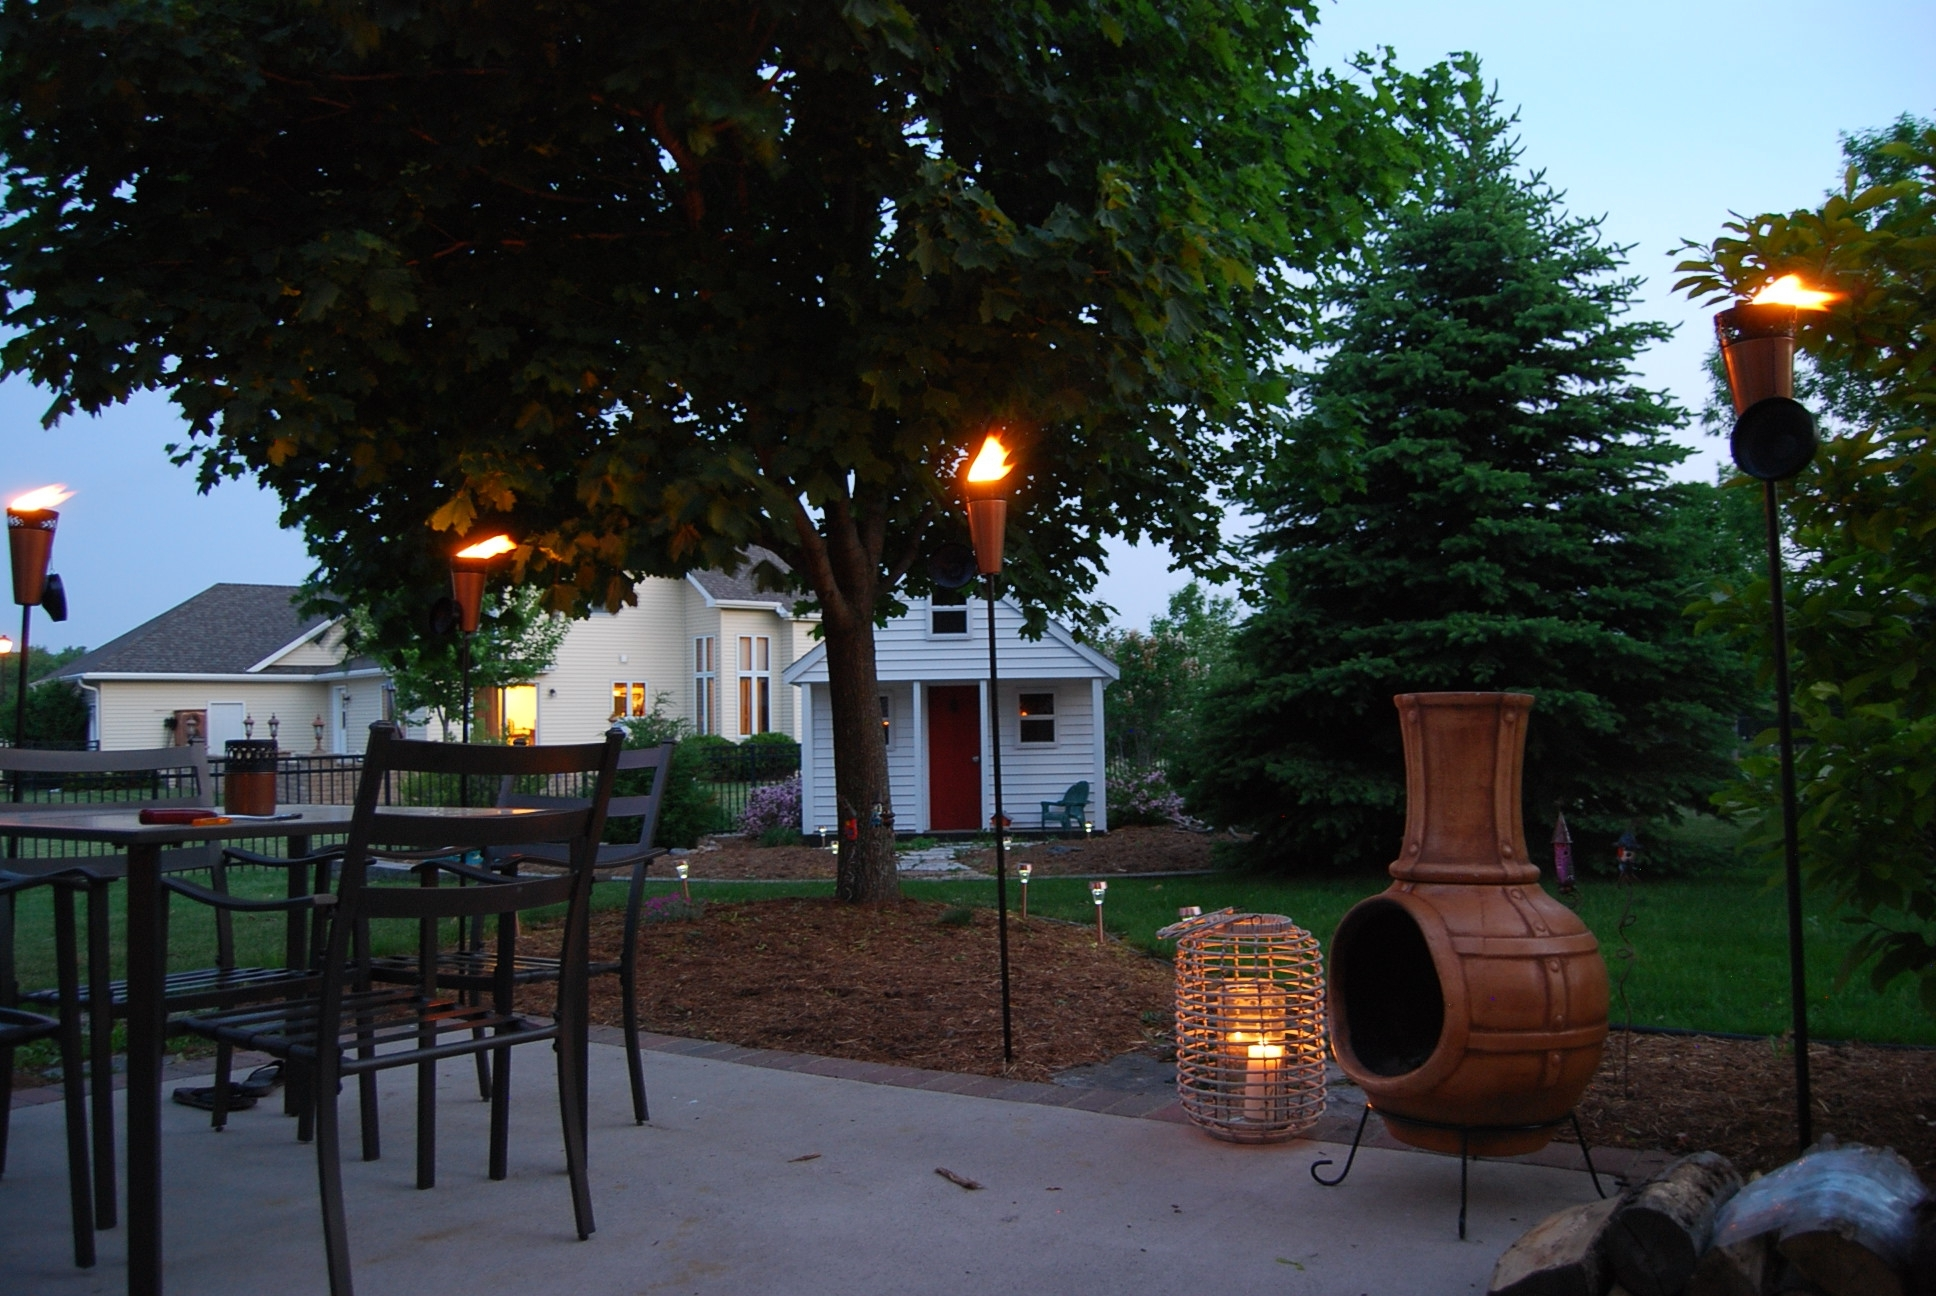 Patio Torches New Propane Tiki Torches For Sale Led Flame Lamp For Favorite Outdoor Tiki Lanterns (View 13 of 20)